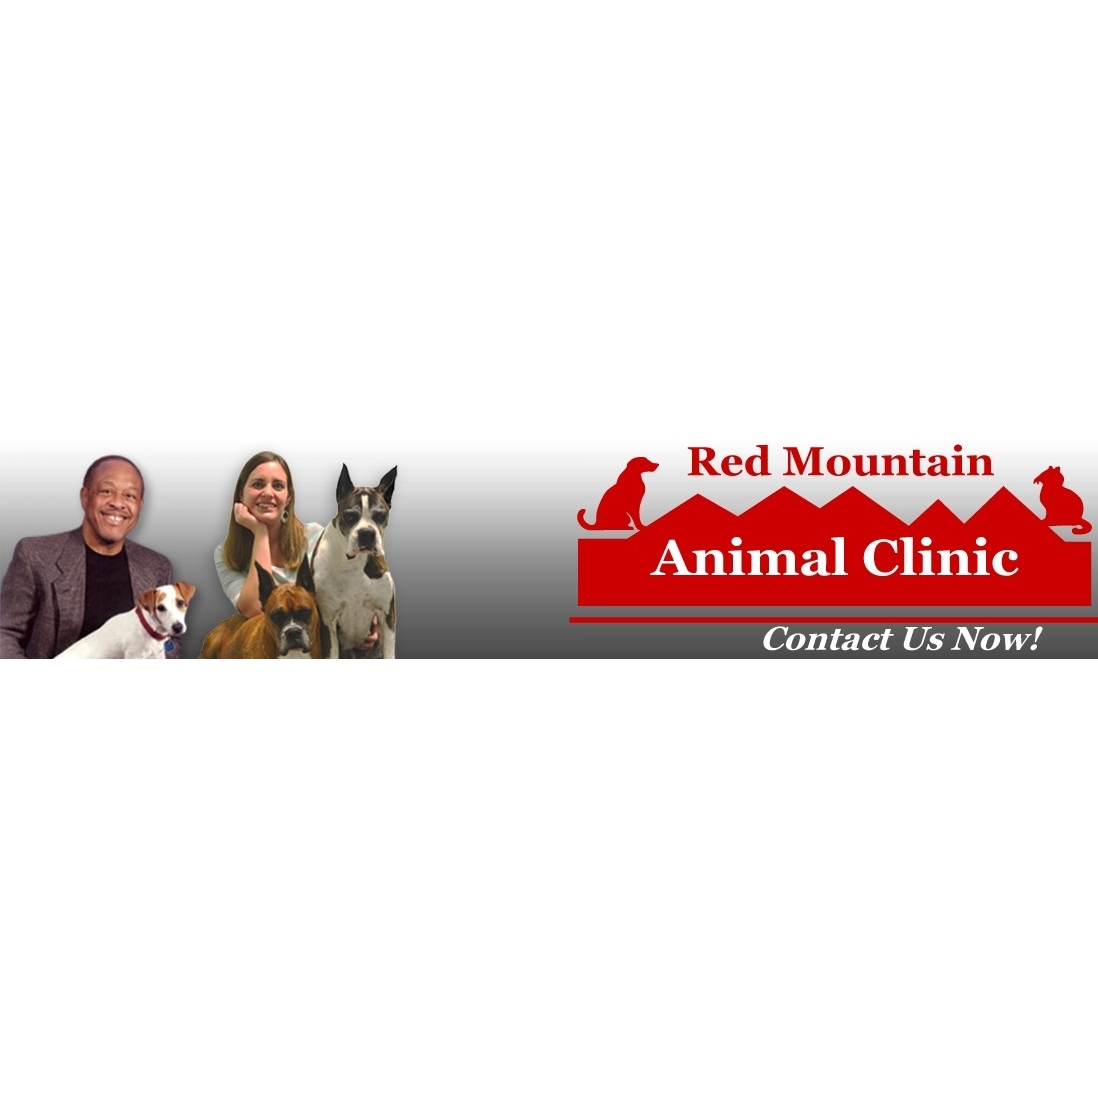 Red Mountain Animal Clinic